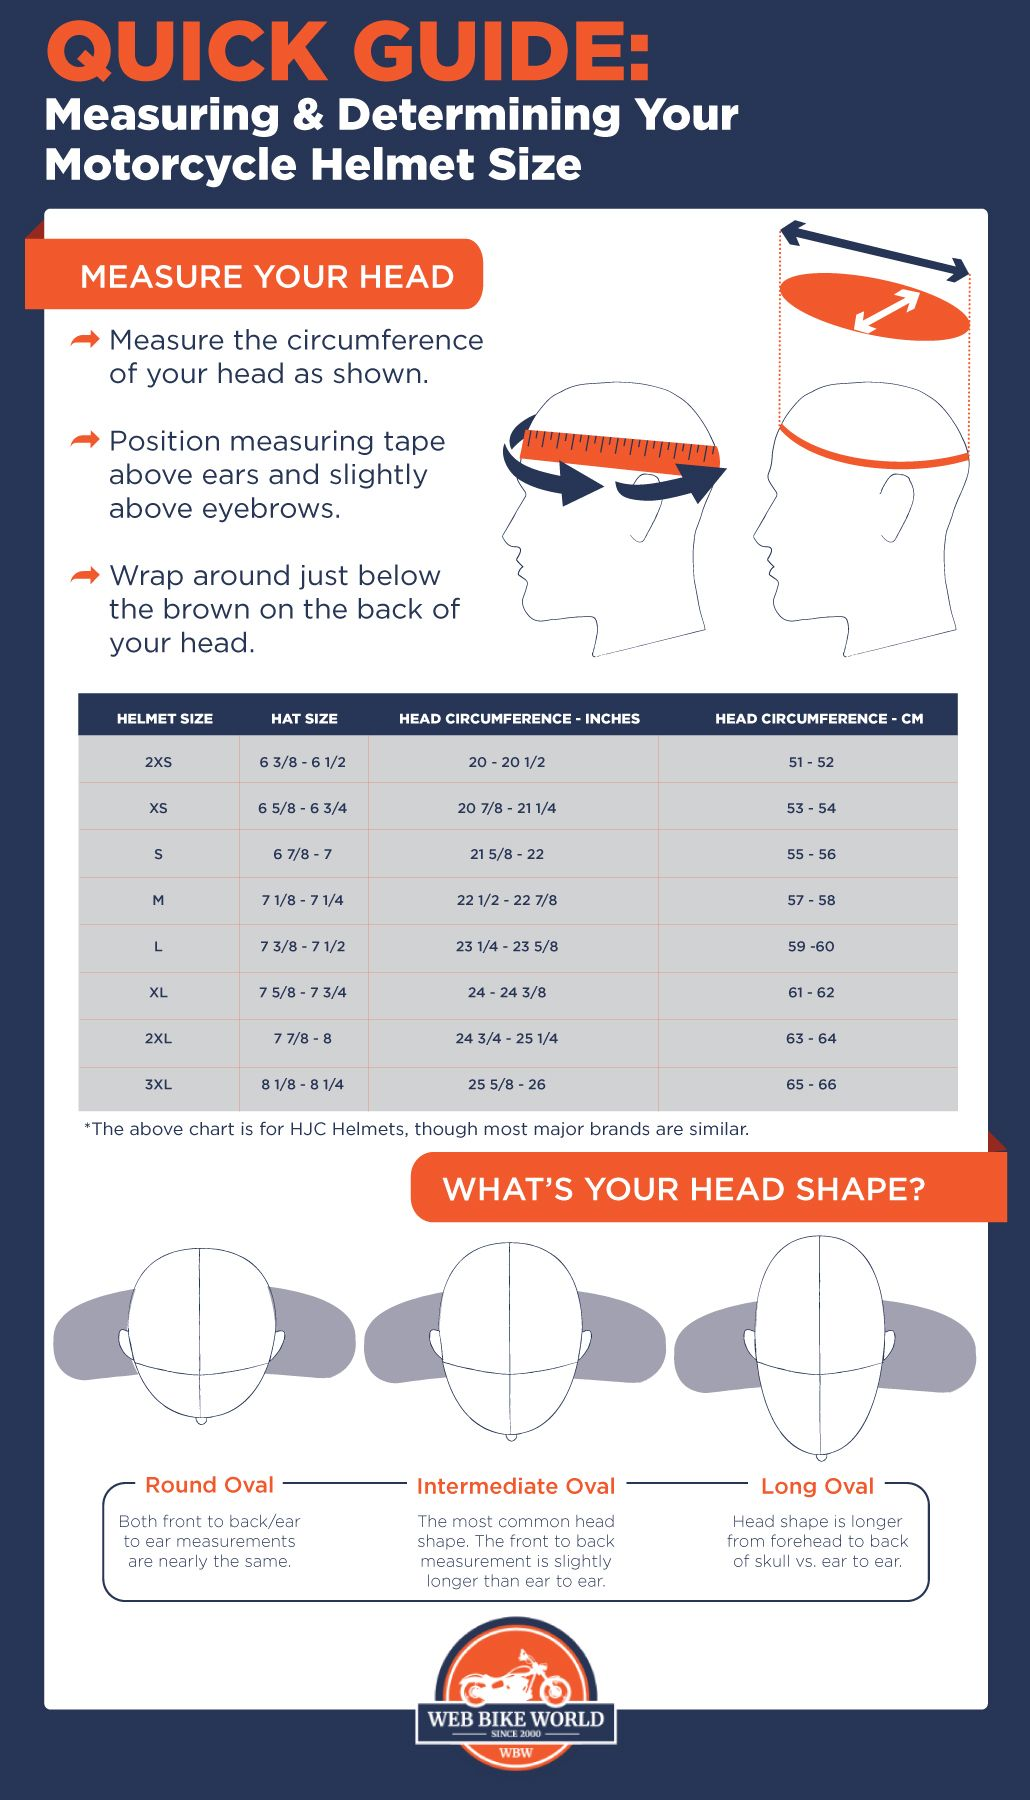 Quick Guide to Determining Your Head Shape & Helmet Size